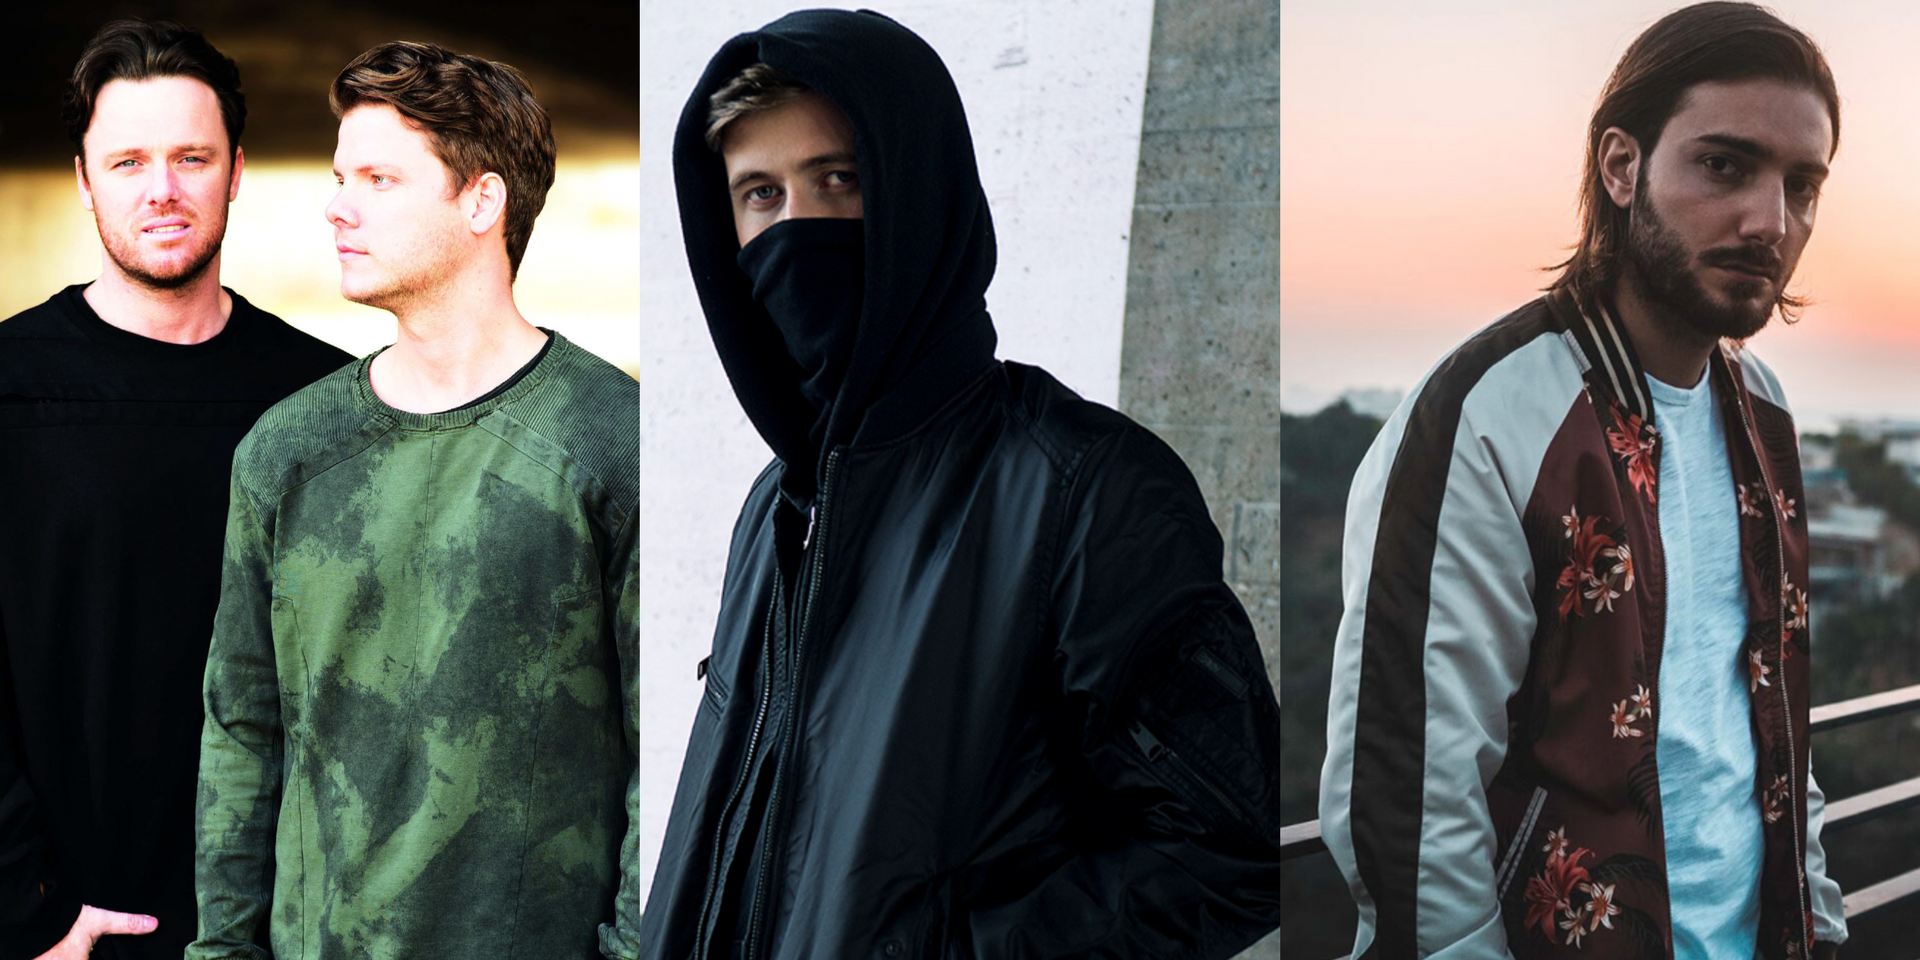 Marquee Singapore reveals August schedule – Alan Walker, Alesso and more to perform